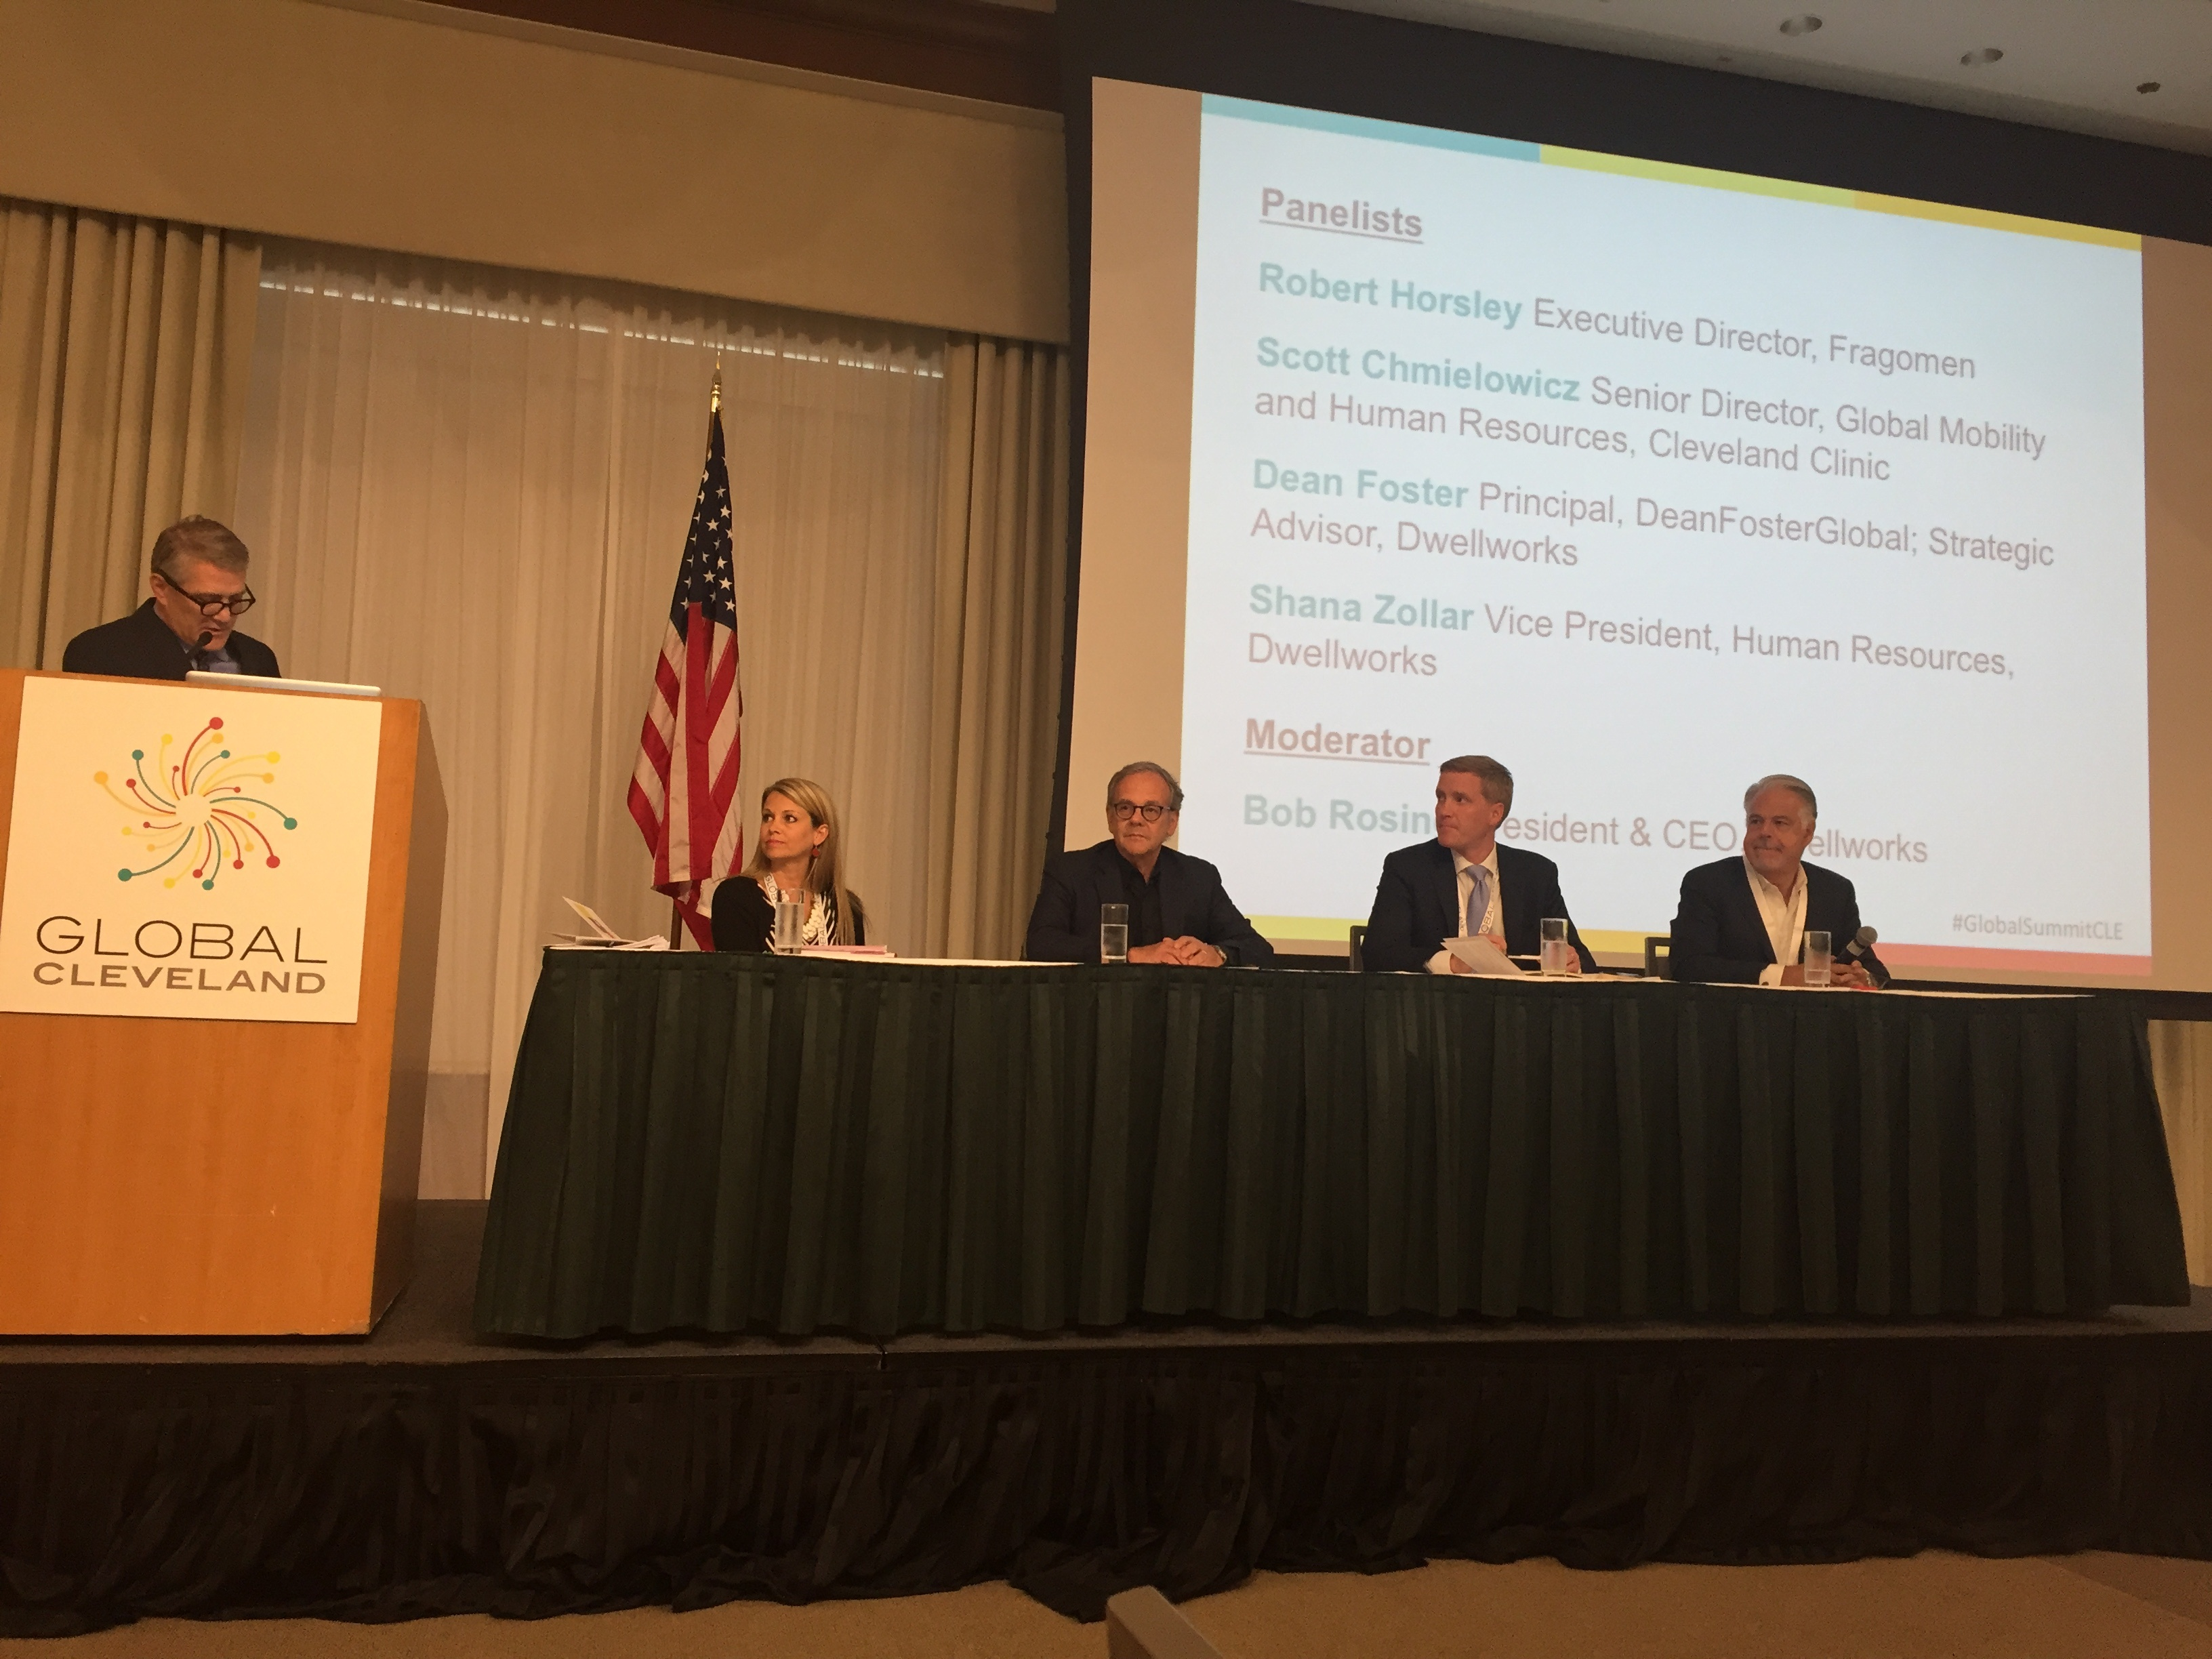 This is an image of the Dwellworks team participating on a panel which focused on the importance of global teams.